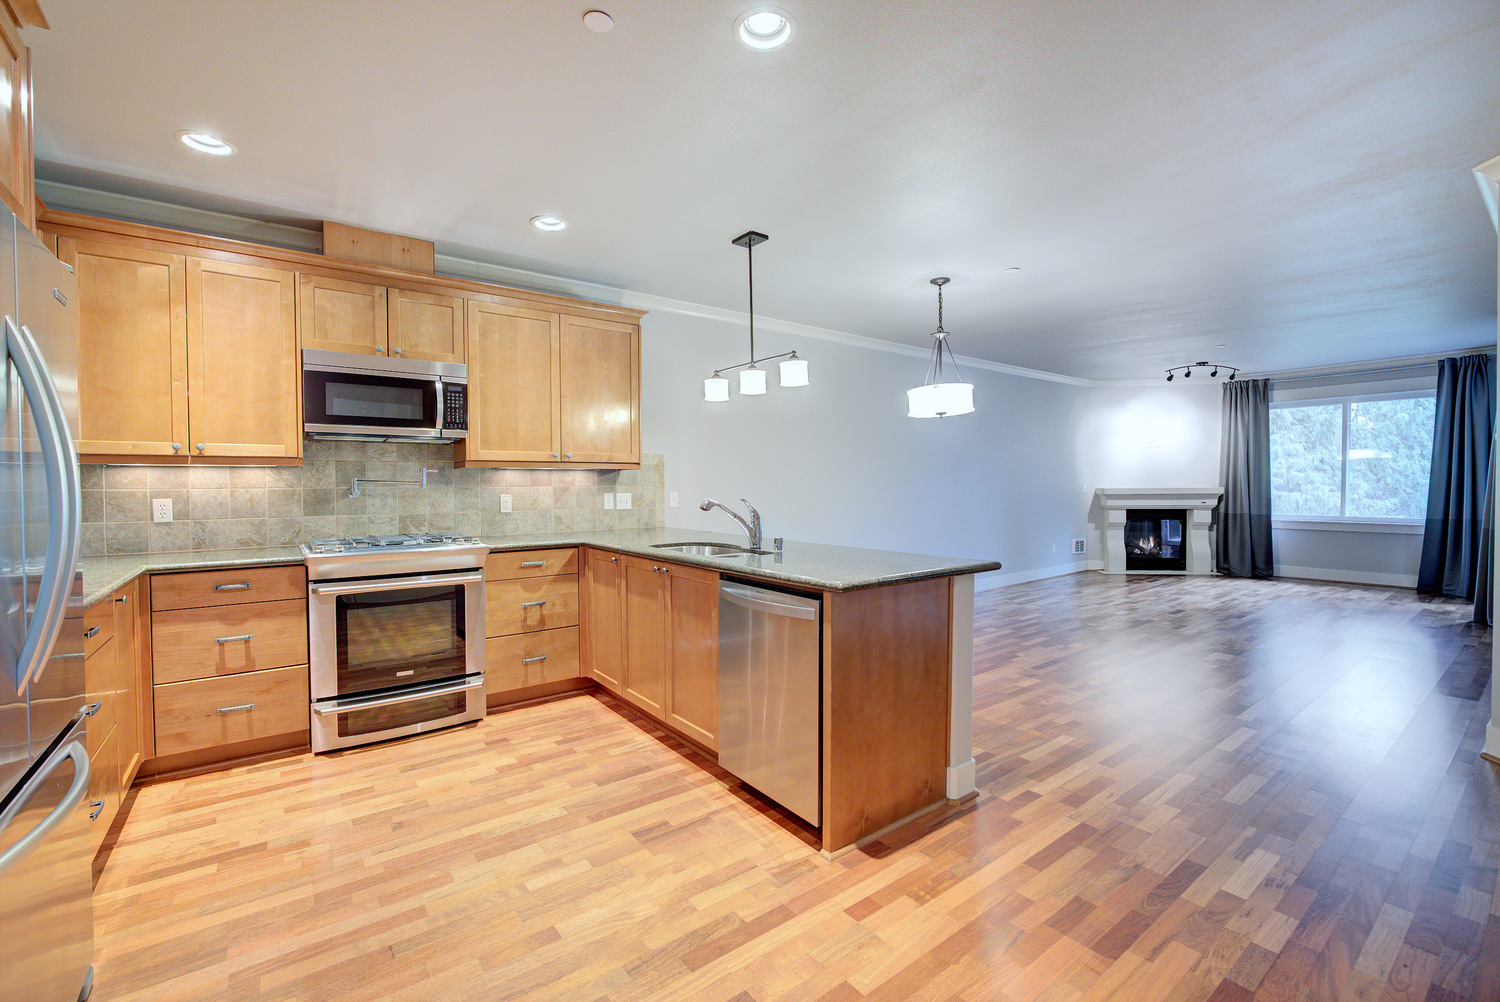 Two Bedroom Issaquah Rental Condo | 18609 SE Newport Way #303, Issaquah | RE/MAX Integrity Property Management